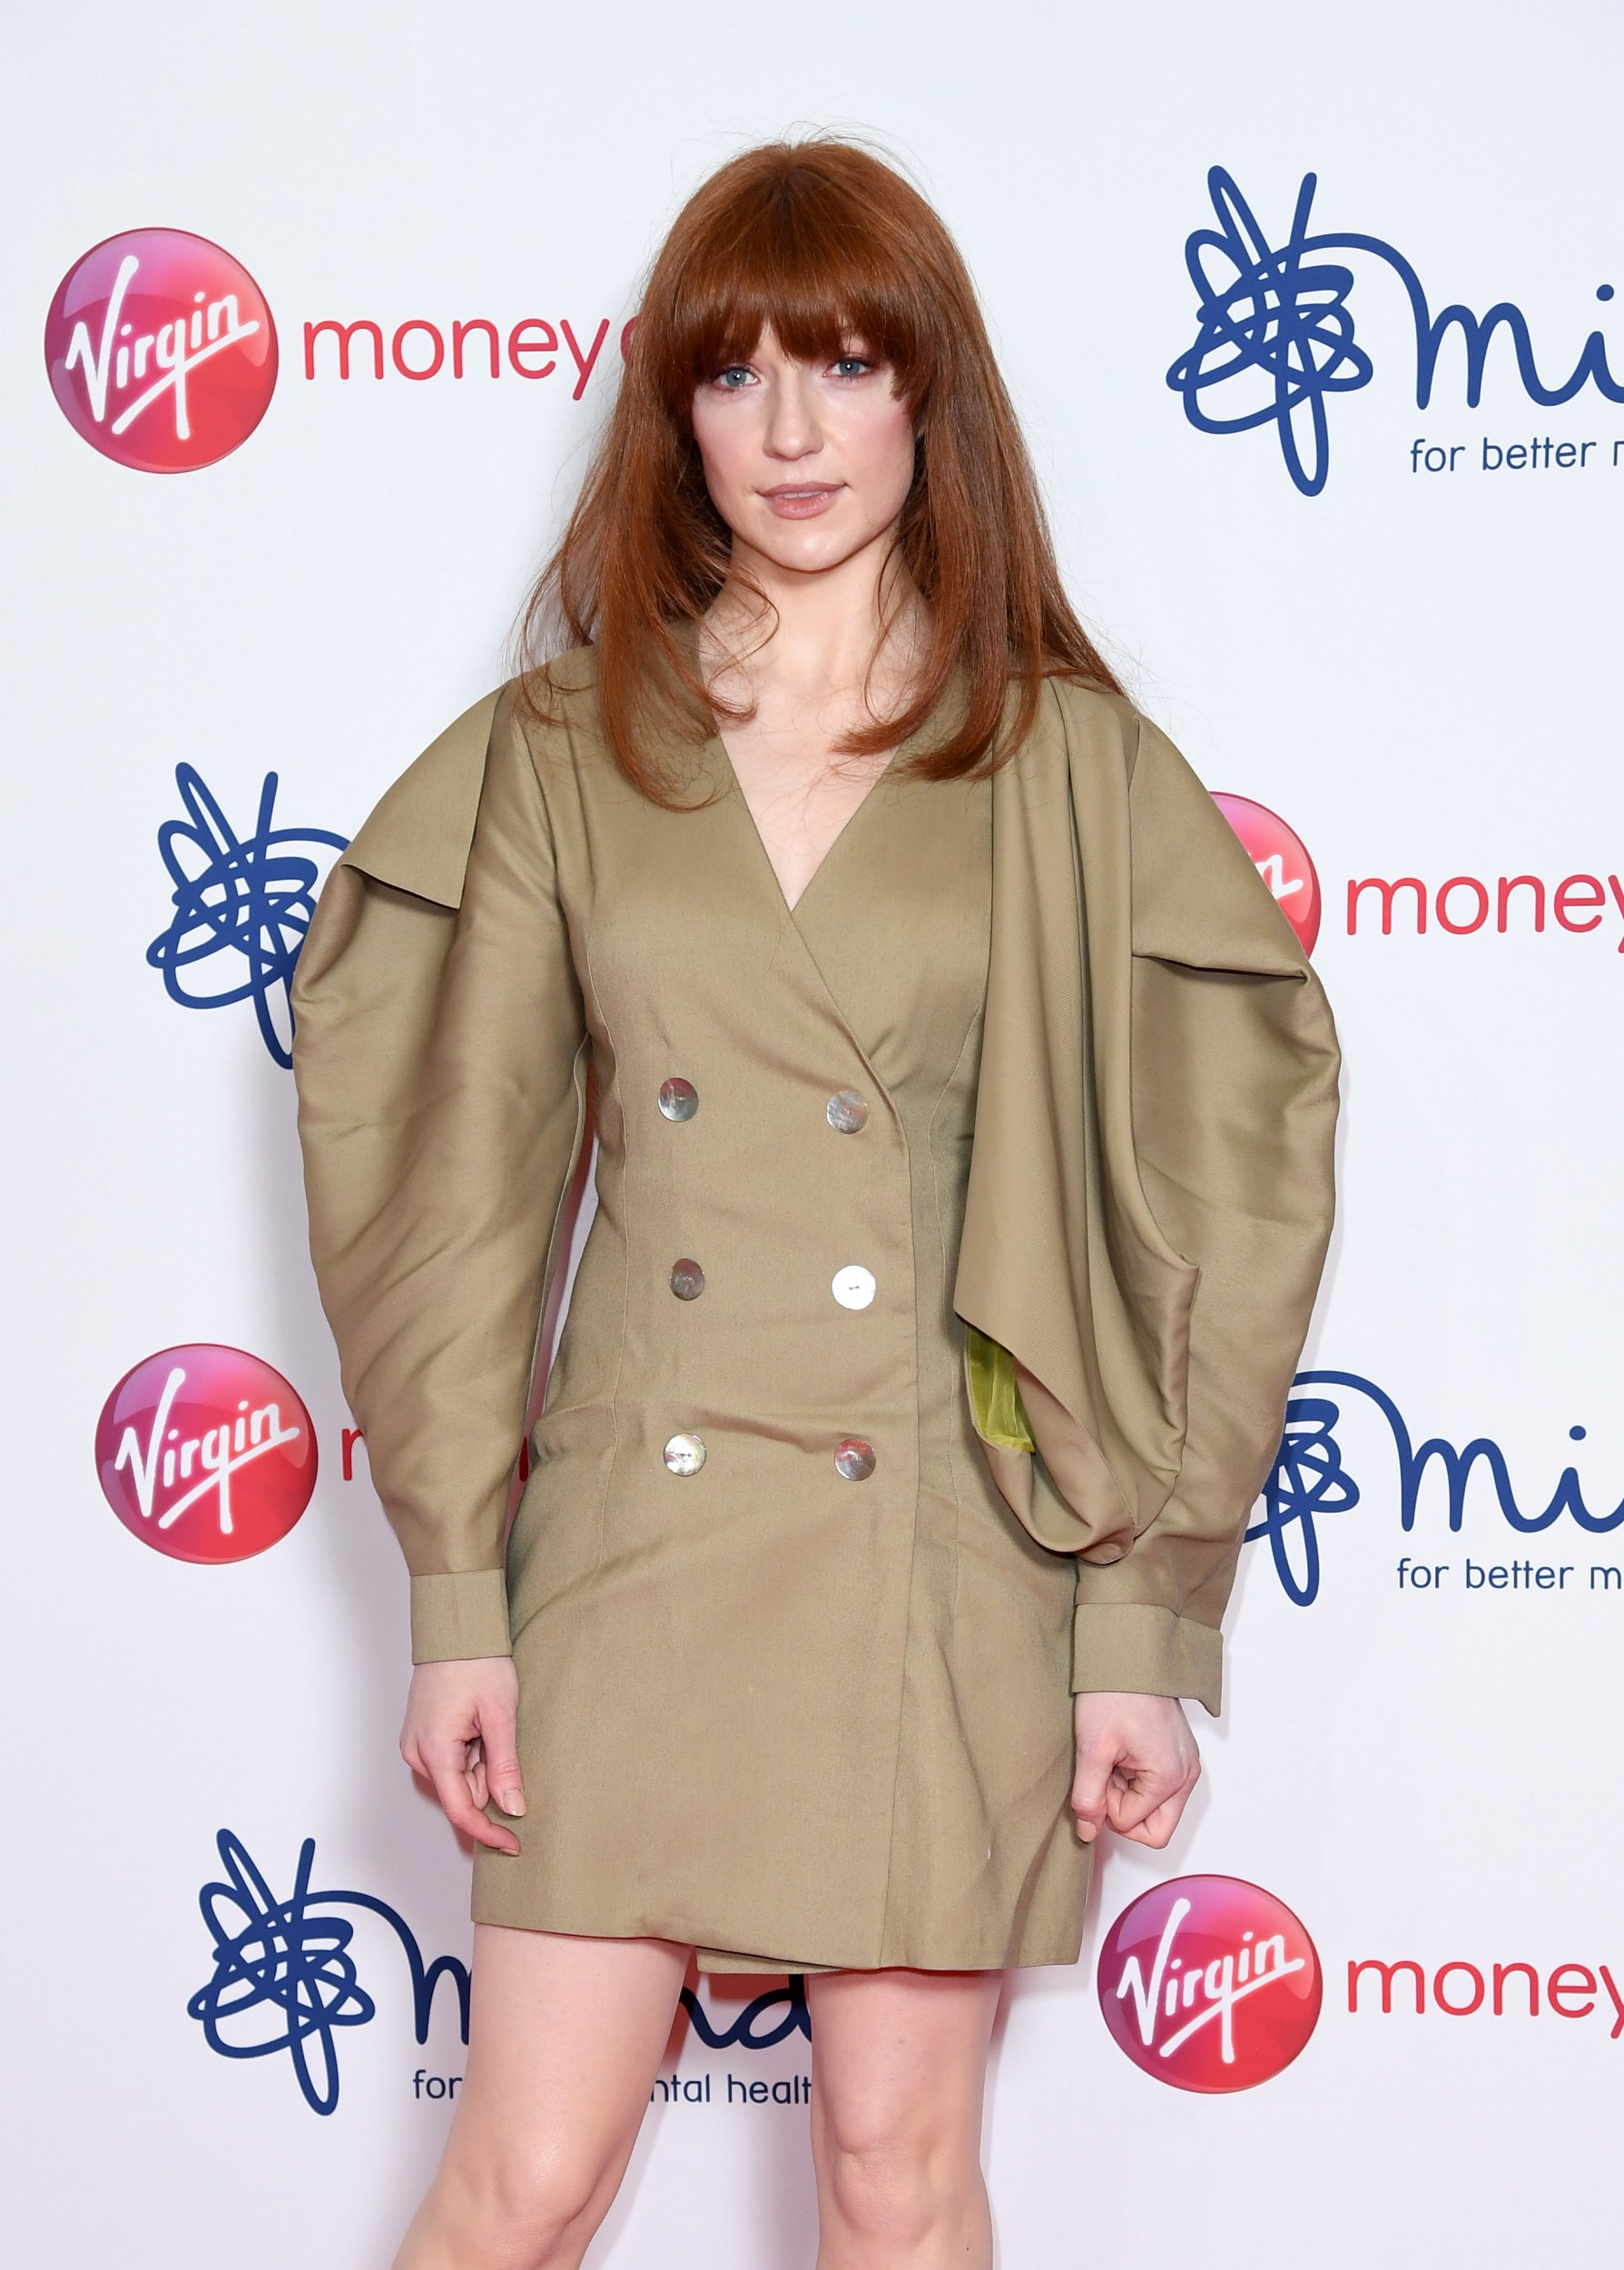 LONDON, ENGLAND - NOVEMBER 29: Nicola Roberts attends the Virgin Money Giving Mind Media Awards 2018 at Queen Elizabeth Hall on November 29, 2018 in London, England. (Photo by Karwai Tang/WireImage)